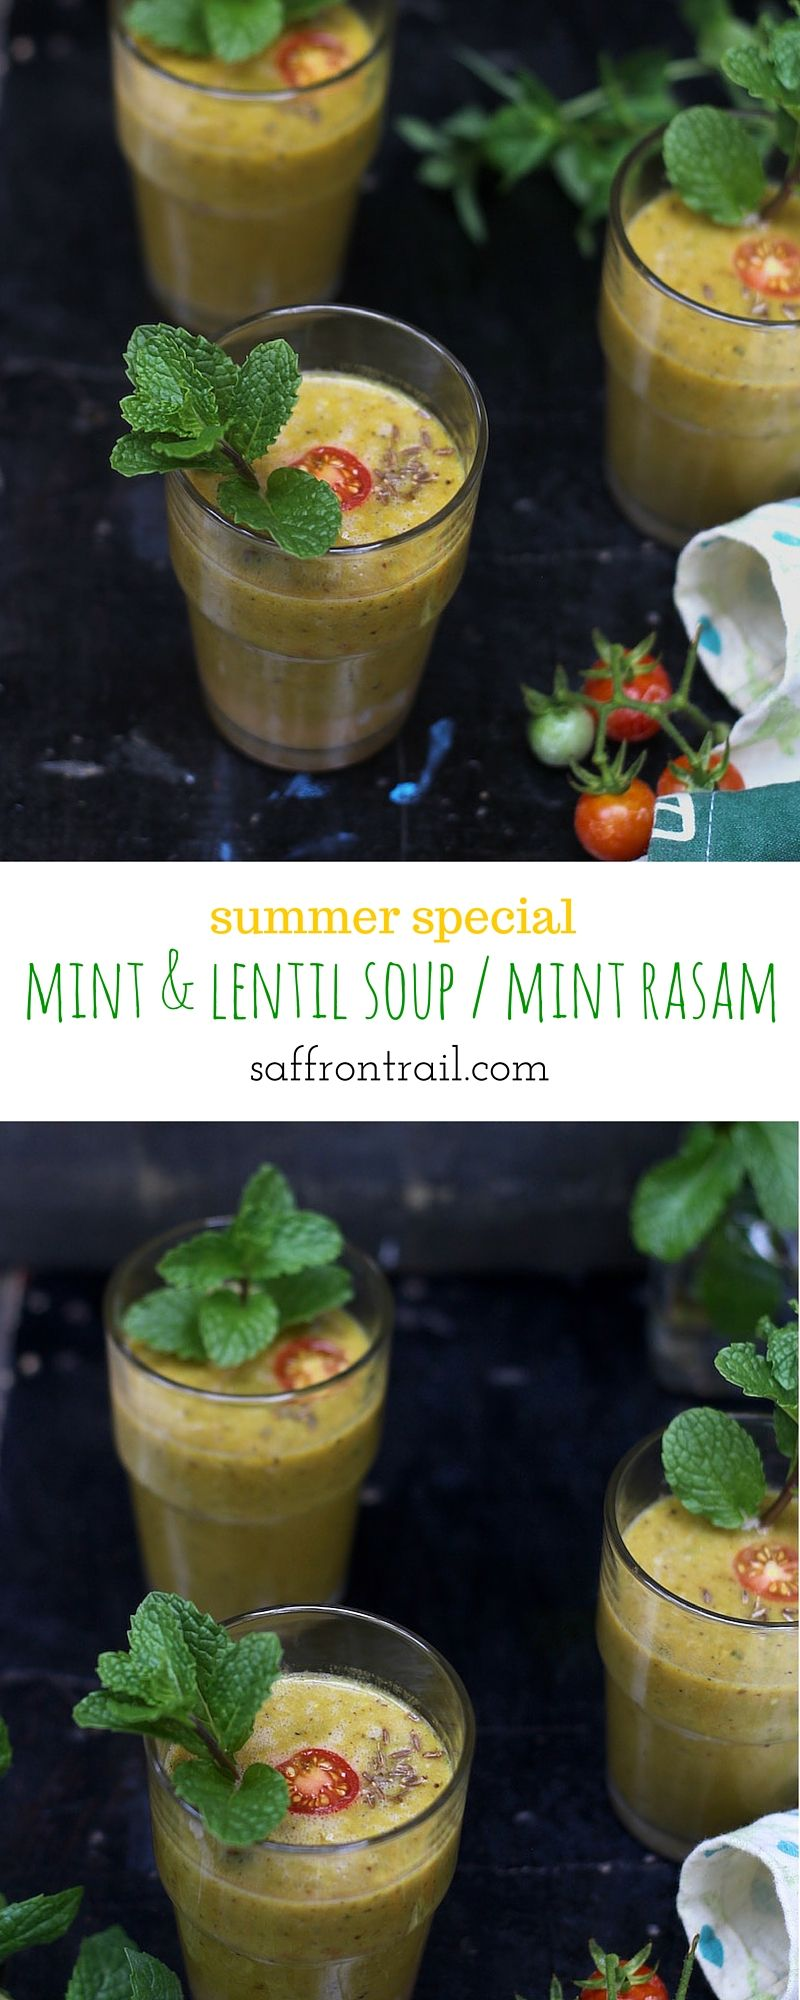 Mint rasam recipe yellow lentils summer special and special recipes indian food recipes forumfinder Gallery